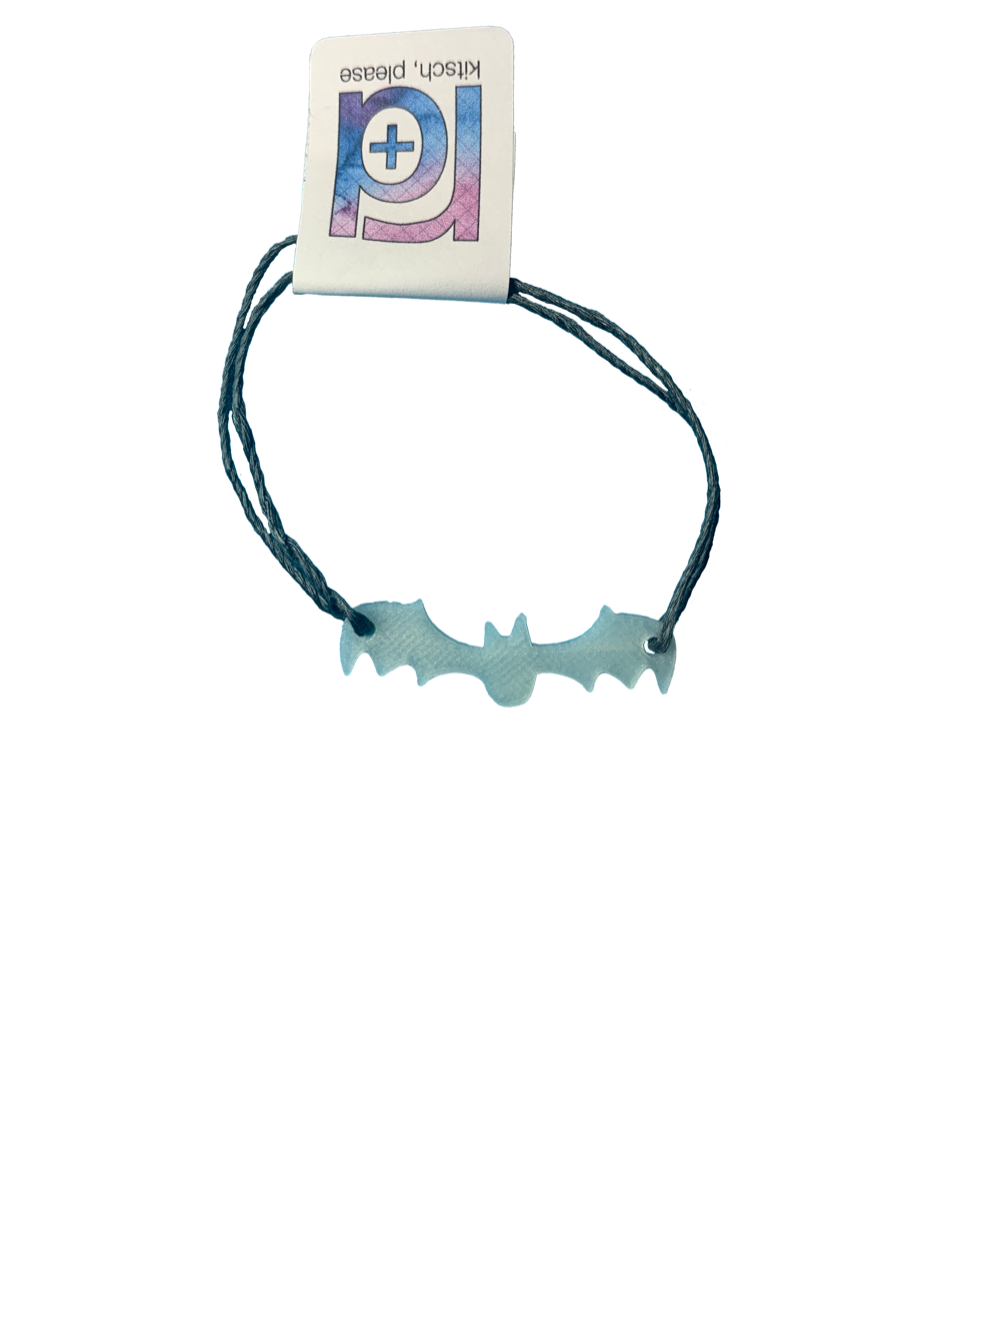 Pictured on a transparent background is a bracelet. There are two dark grey strands and they are holding on to a 3D printed bat that glows in the dark. Hidden by a R+D tag are the two adjustable knots.